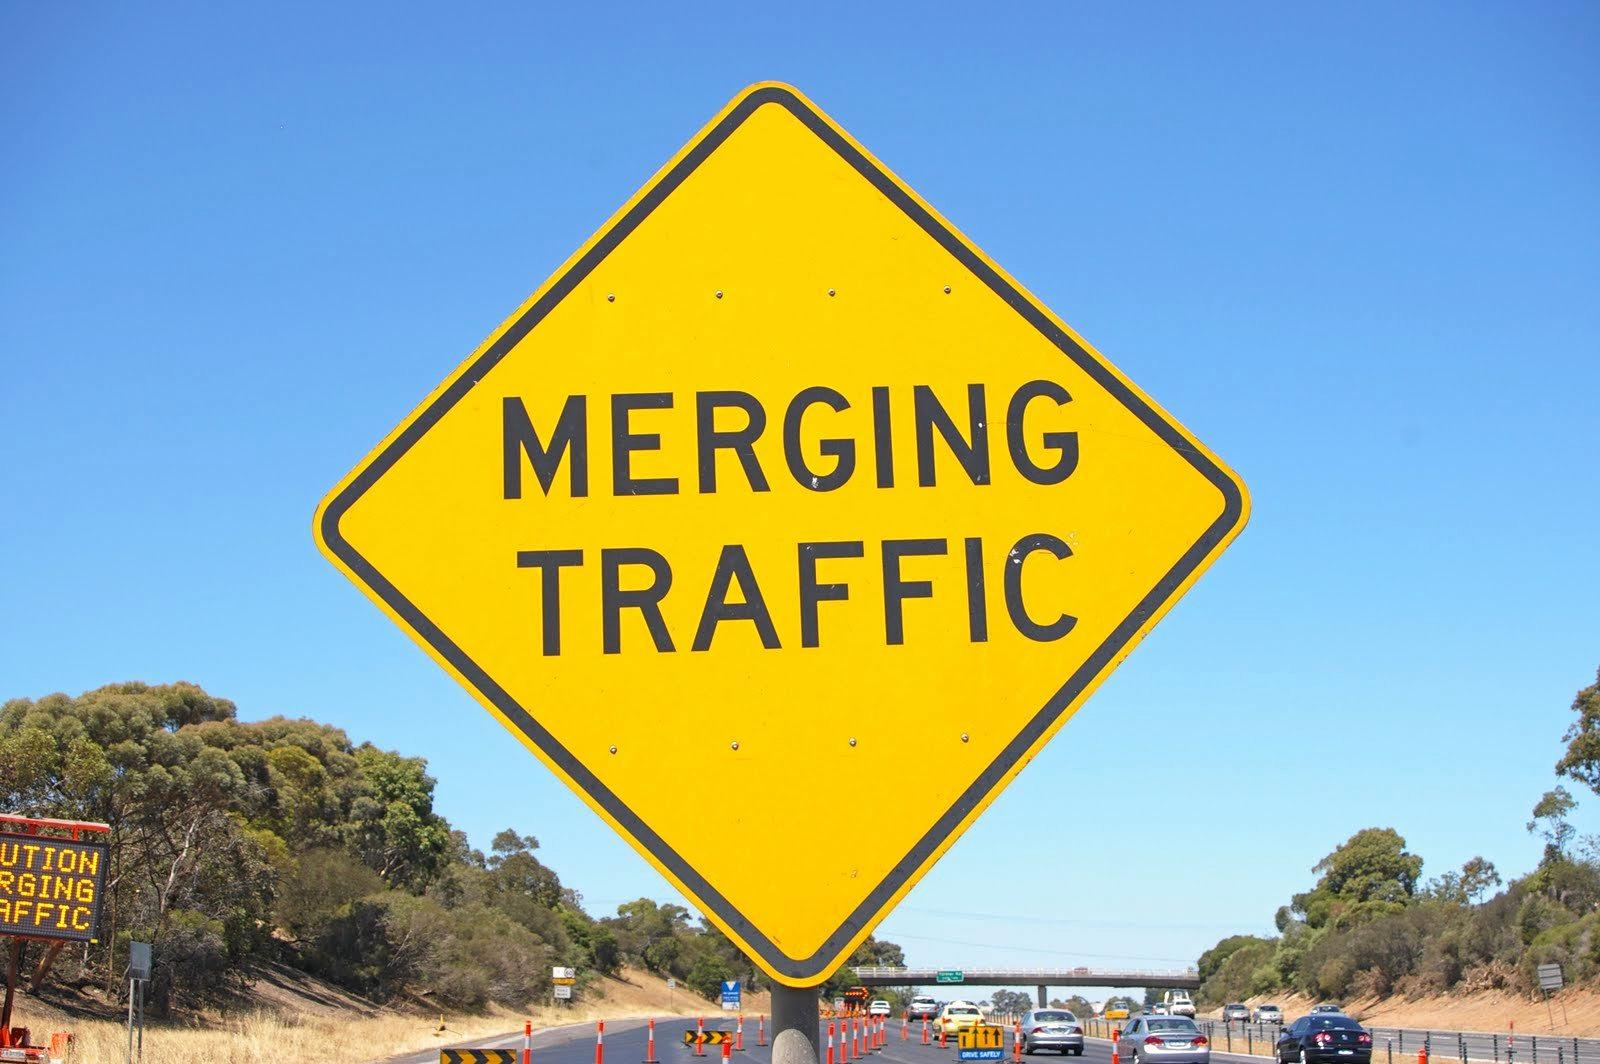 On roads where there are lanes marked, the driver changing lanes must give way to traffic. If there are no markings when the lanes merge it's a case of giving way to the vehicle in front.